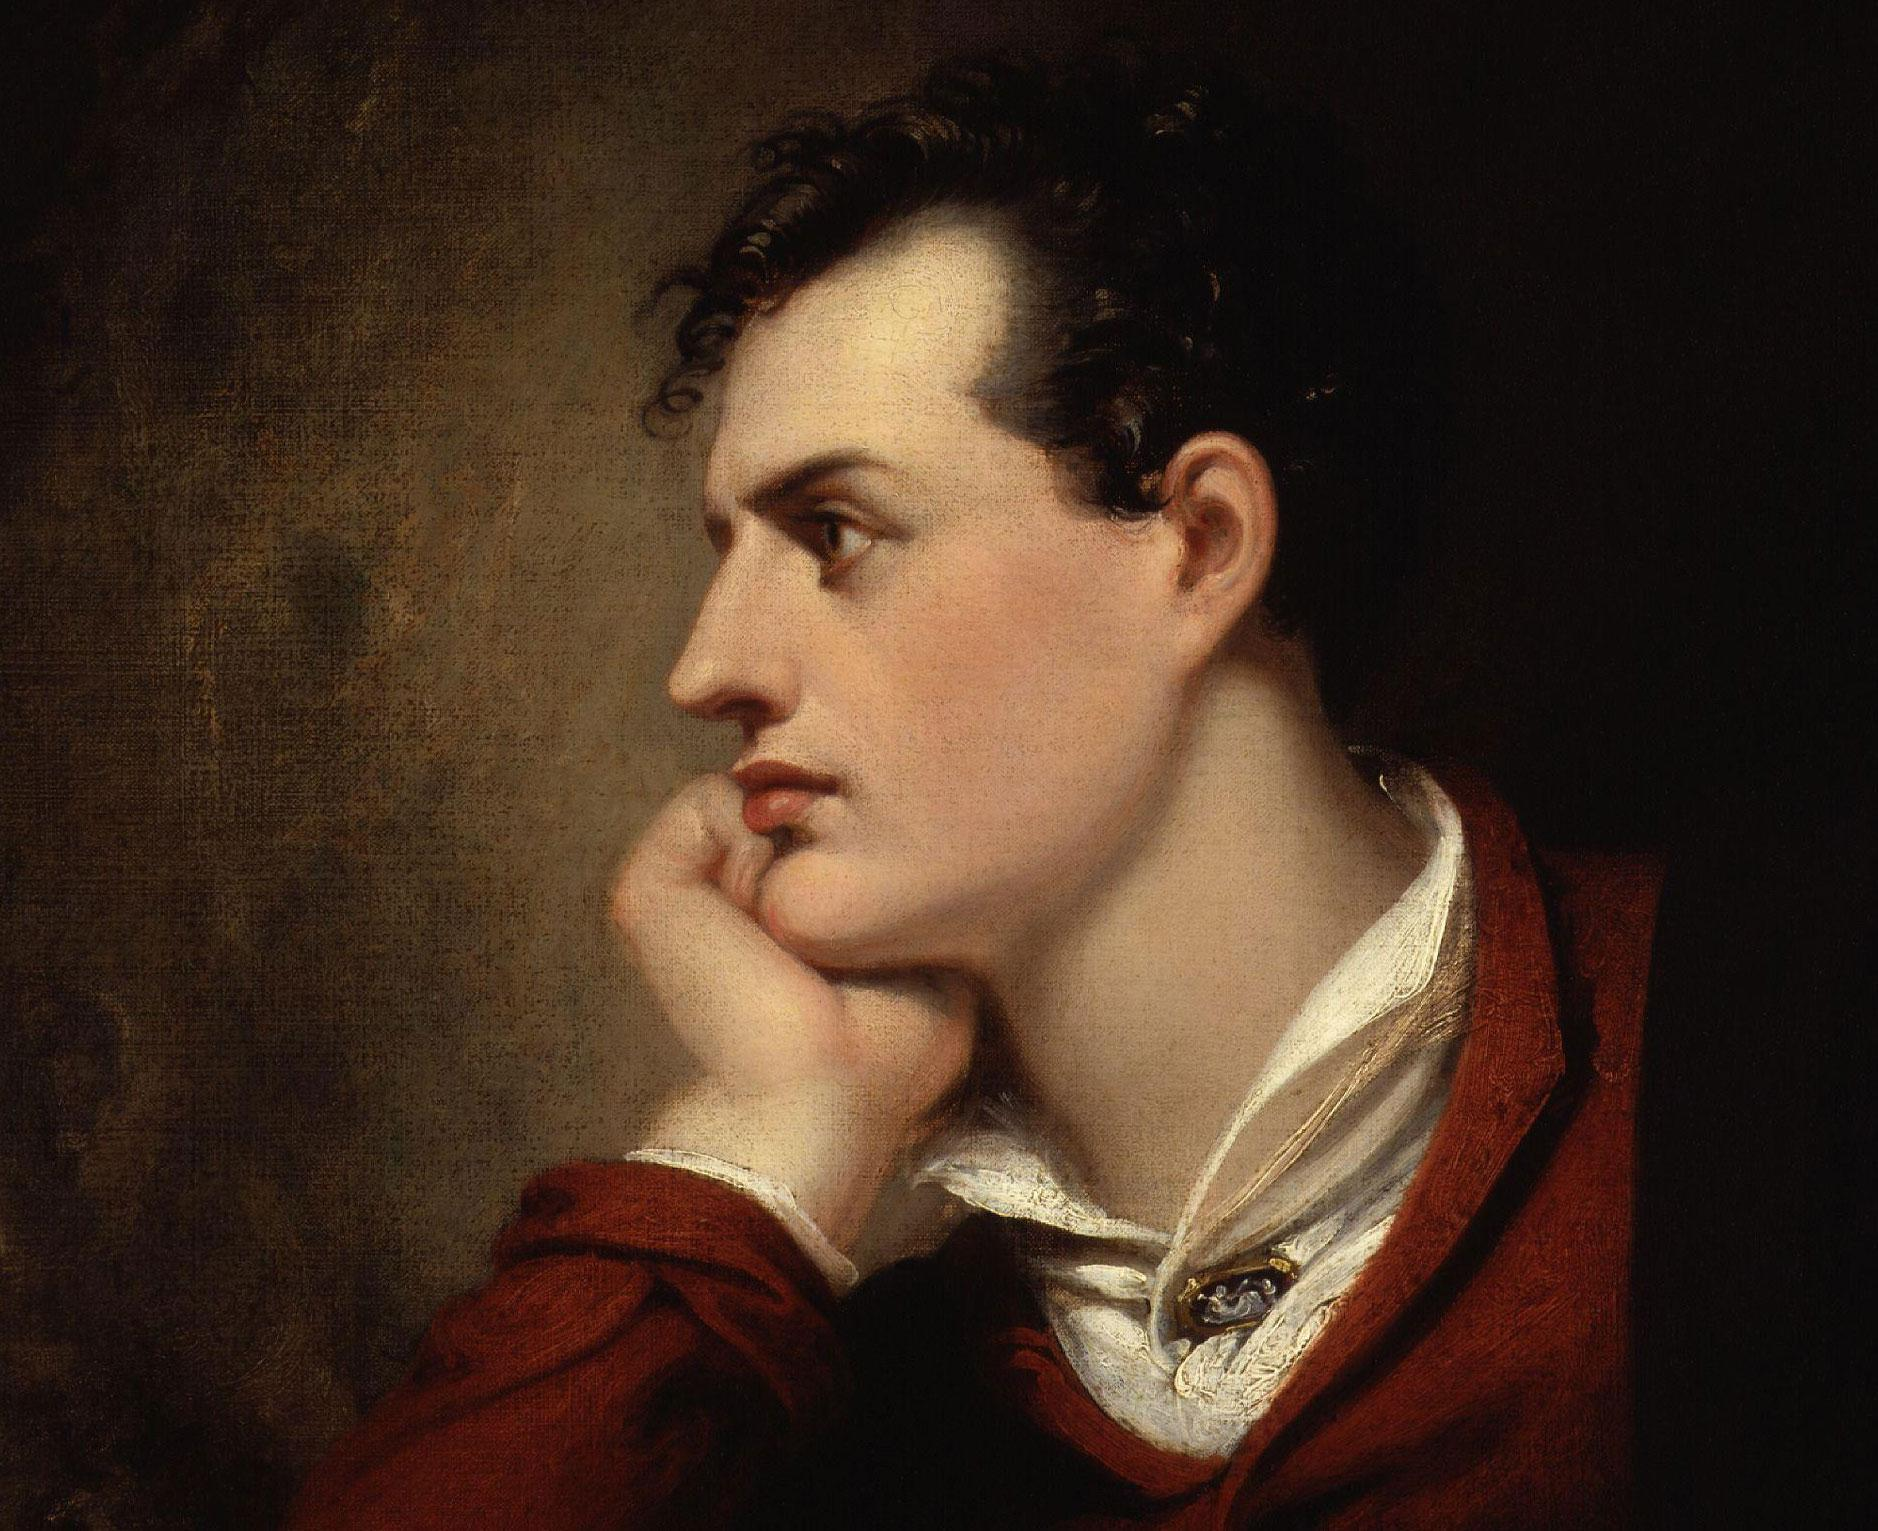 a biography of don juan as byron introspective The item byron : childe harold's pilgrimage, and don juan :a casebook, edited by john jump represents a specific, individual, material embodiment of a distinct intellectual or artistic creation found in brigham young university.